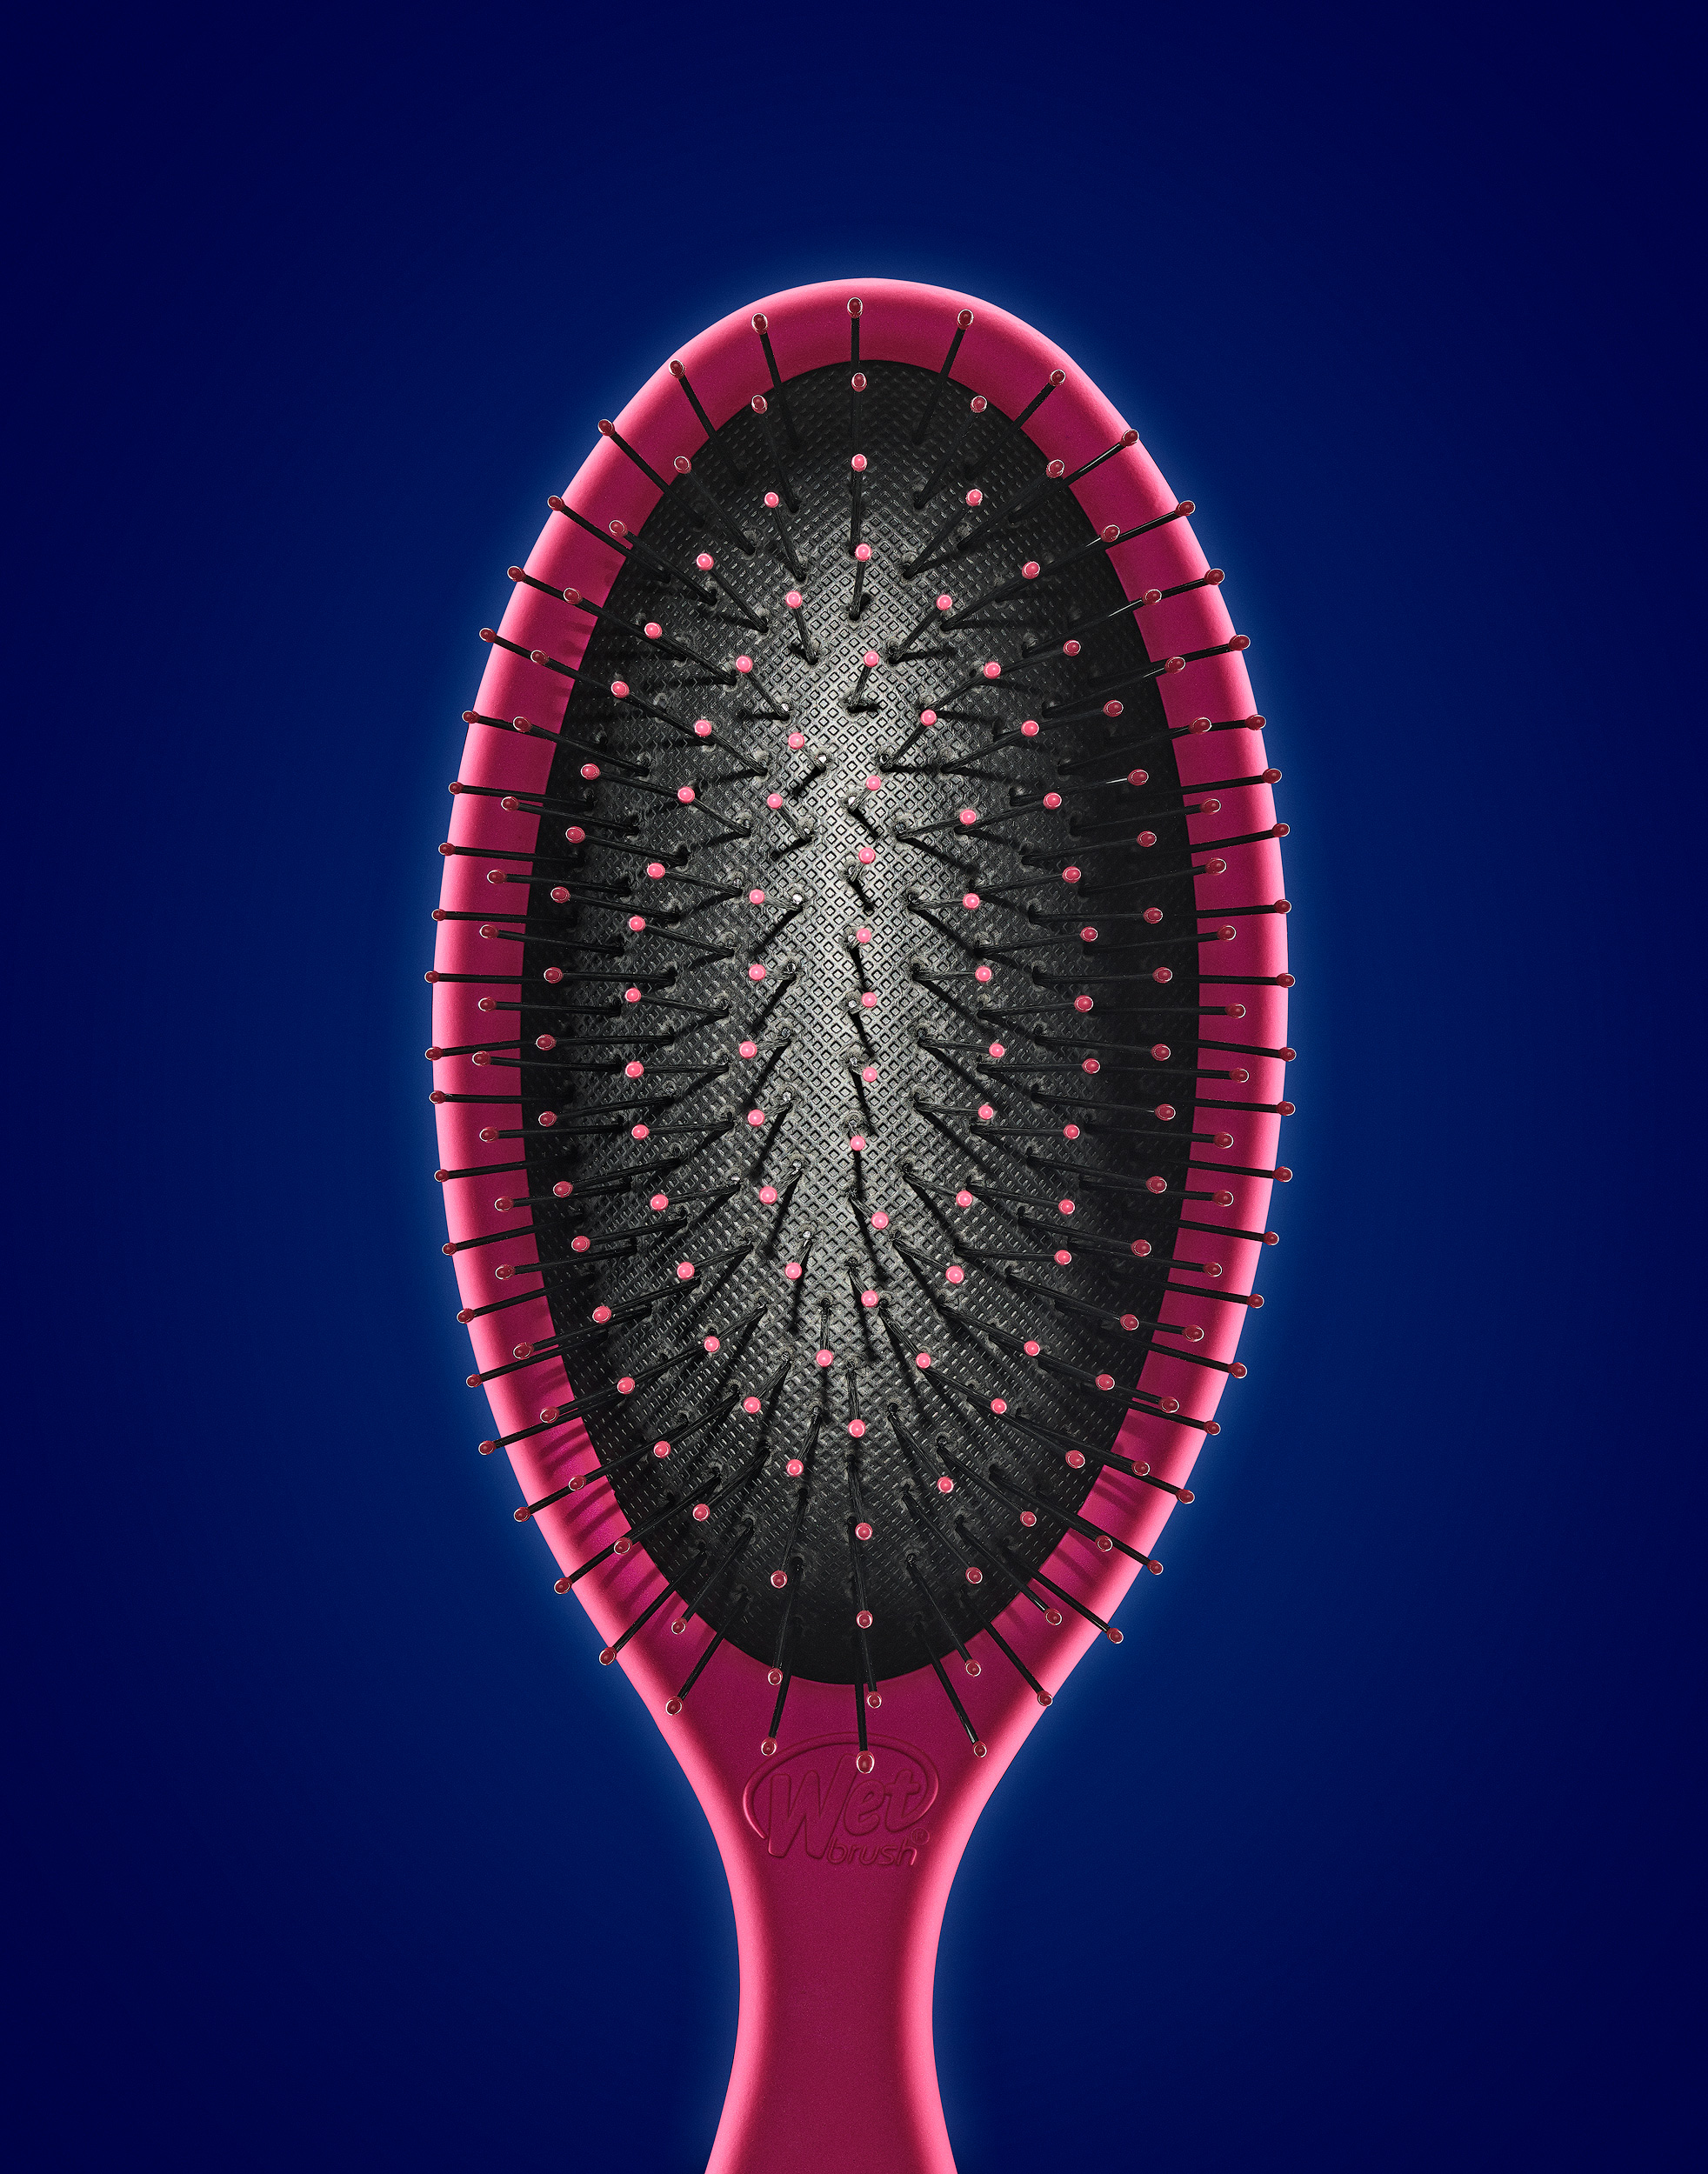 hairbrush_b_v1-copy.jpg